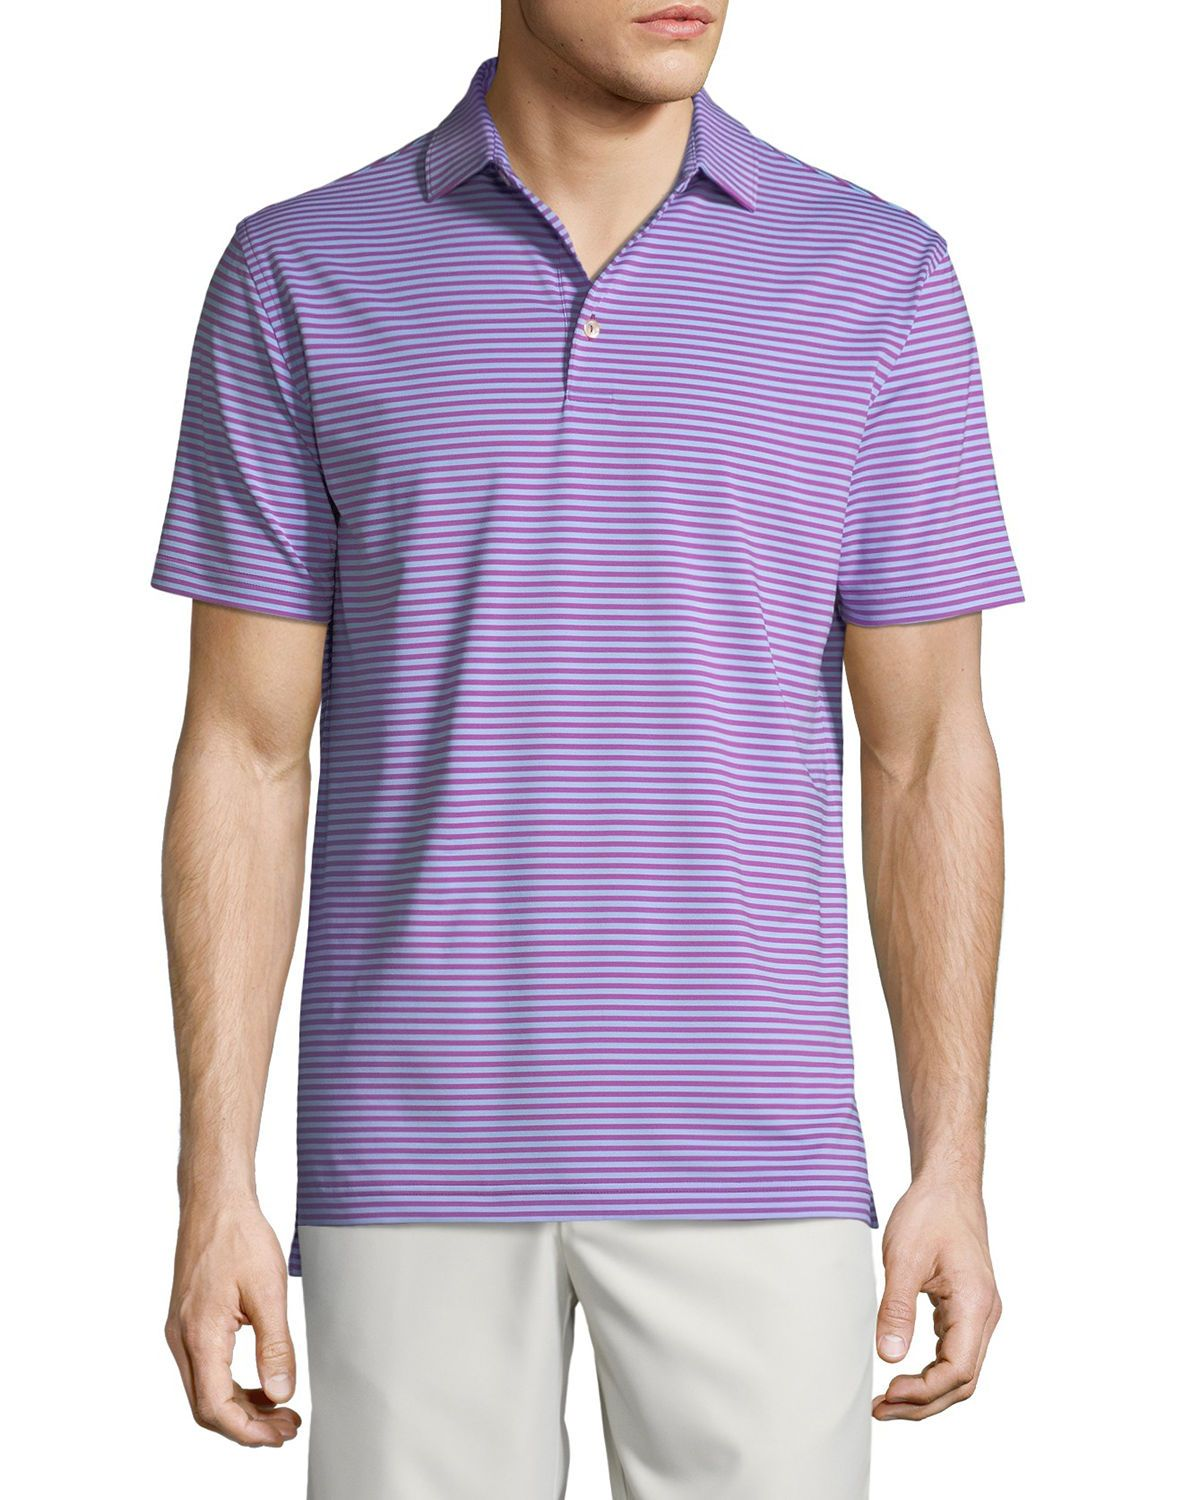 fe6b838777e PETER MILLAR MEN'S COMPETITION STRIPED POLO SHIRT. #petermillar #cloth